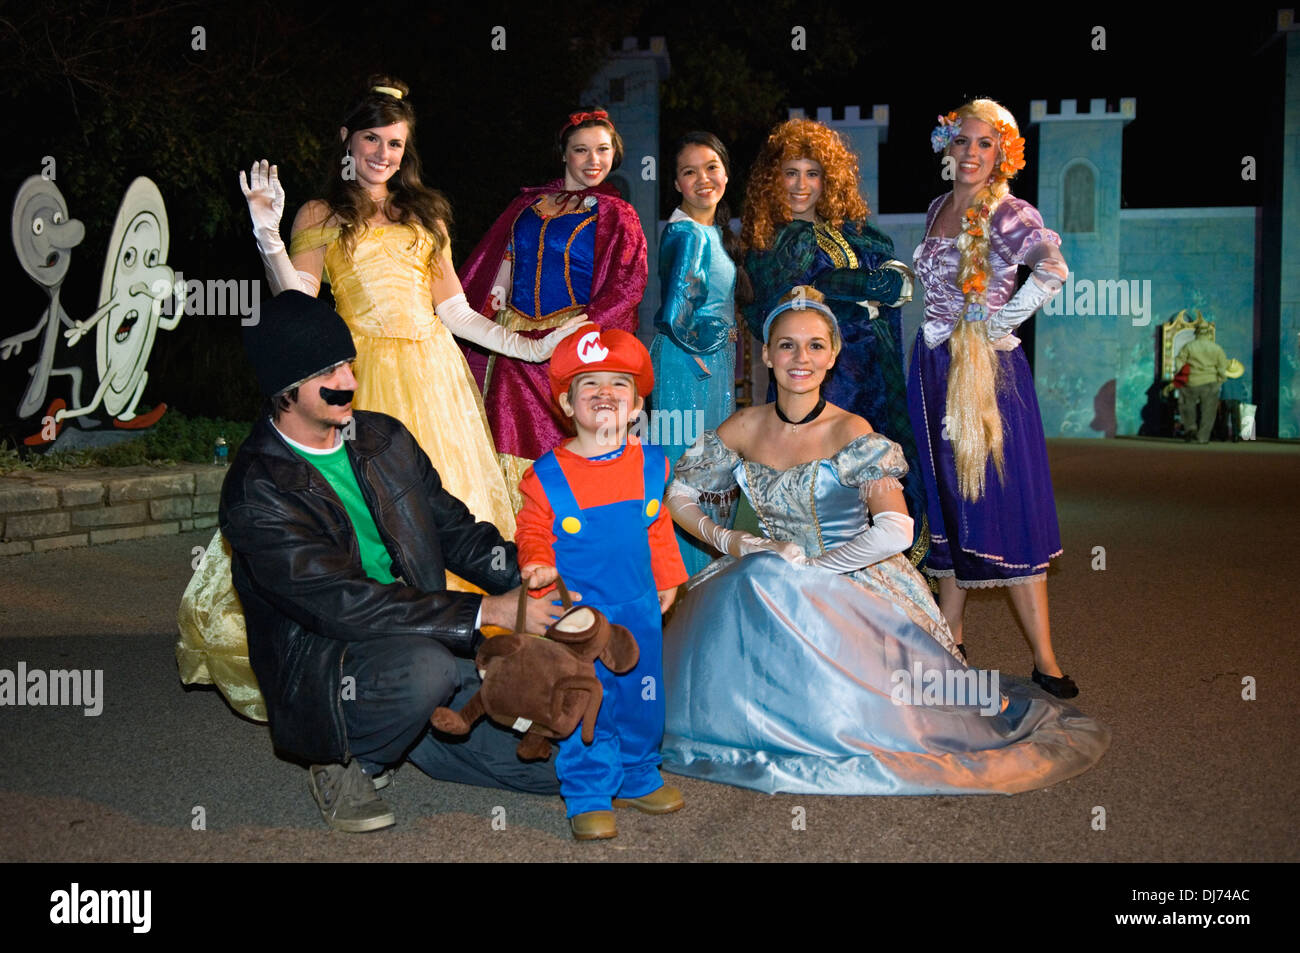 Halloween Party America Stock Photos & Halloween Party America ...